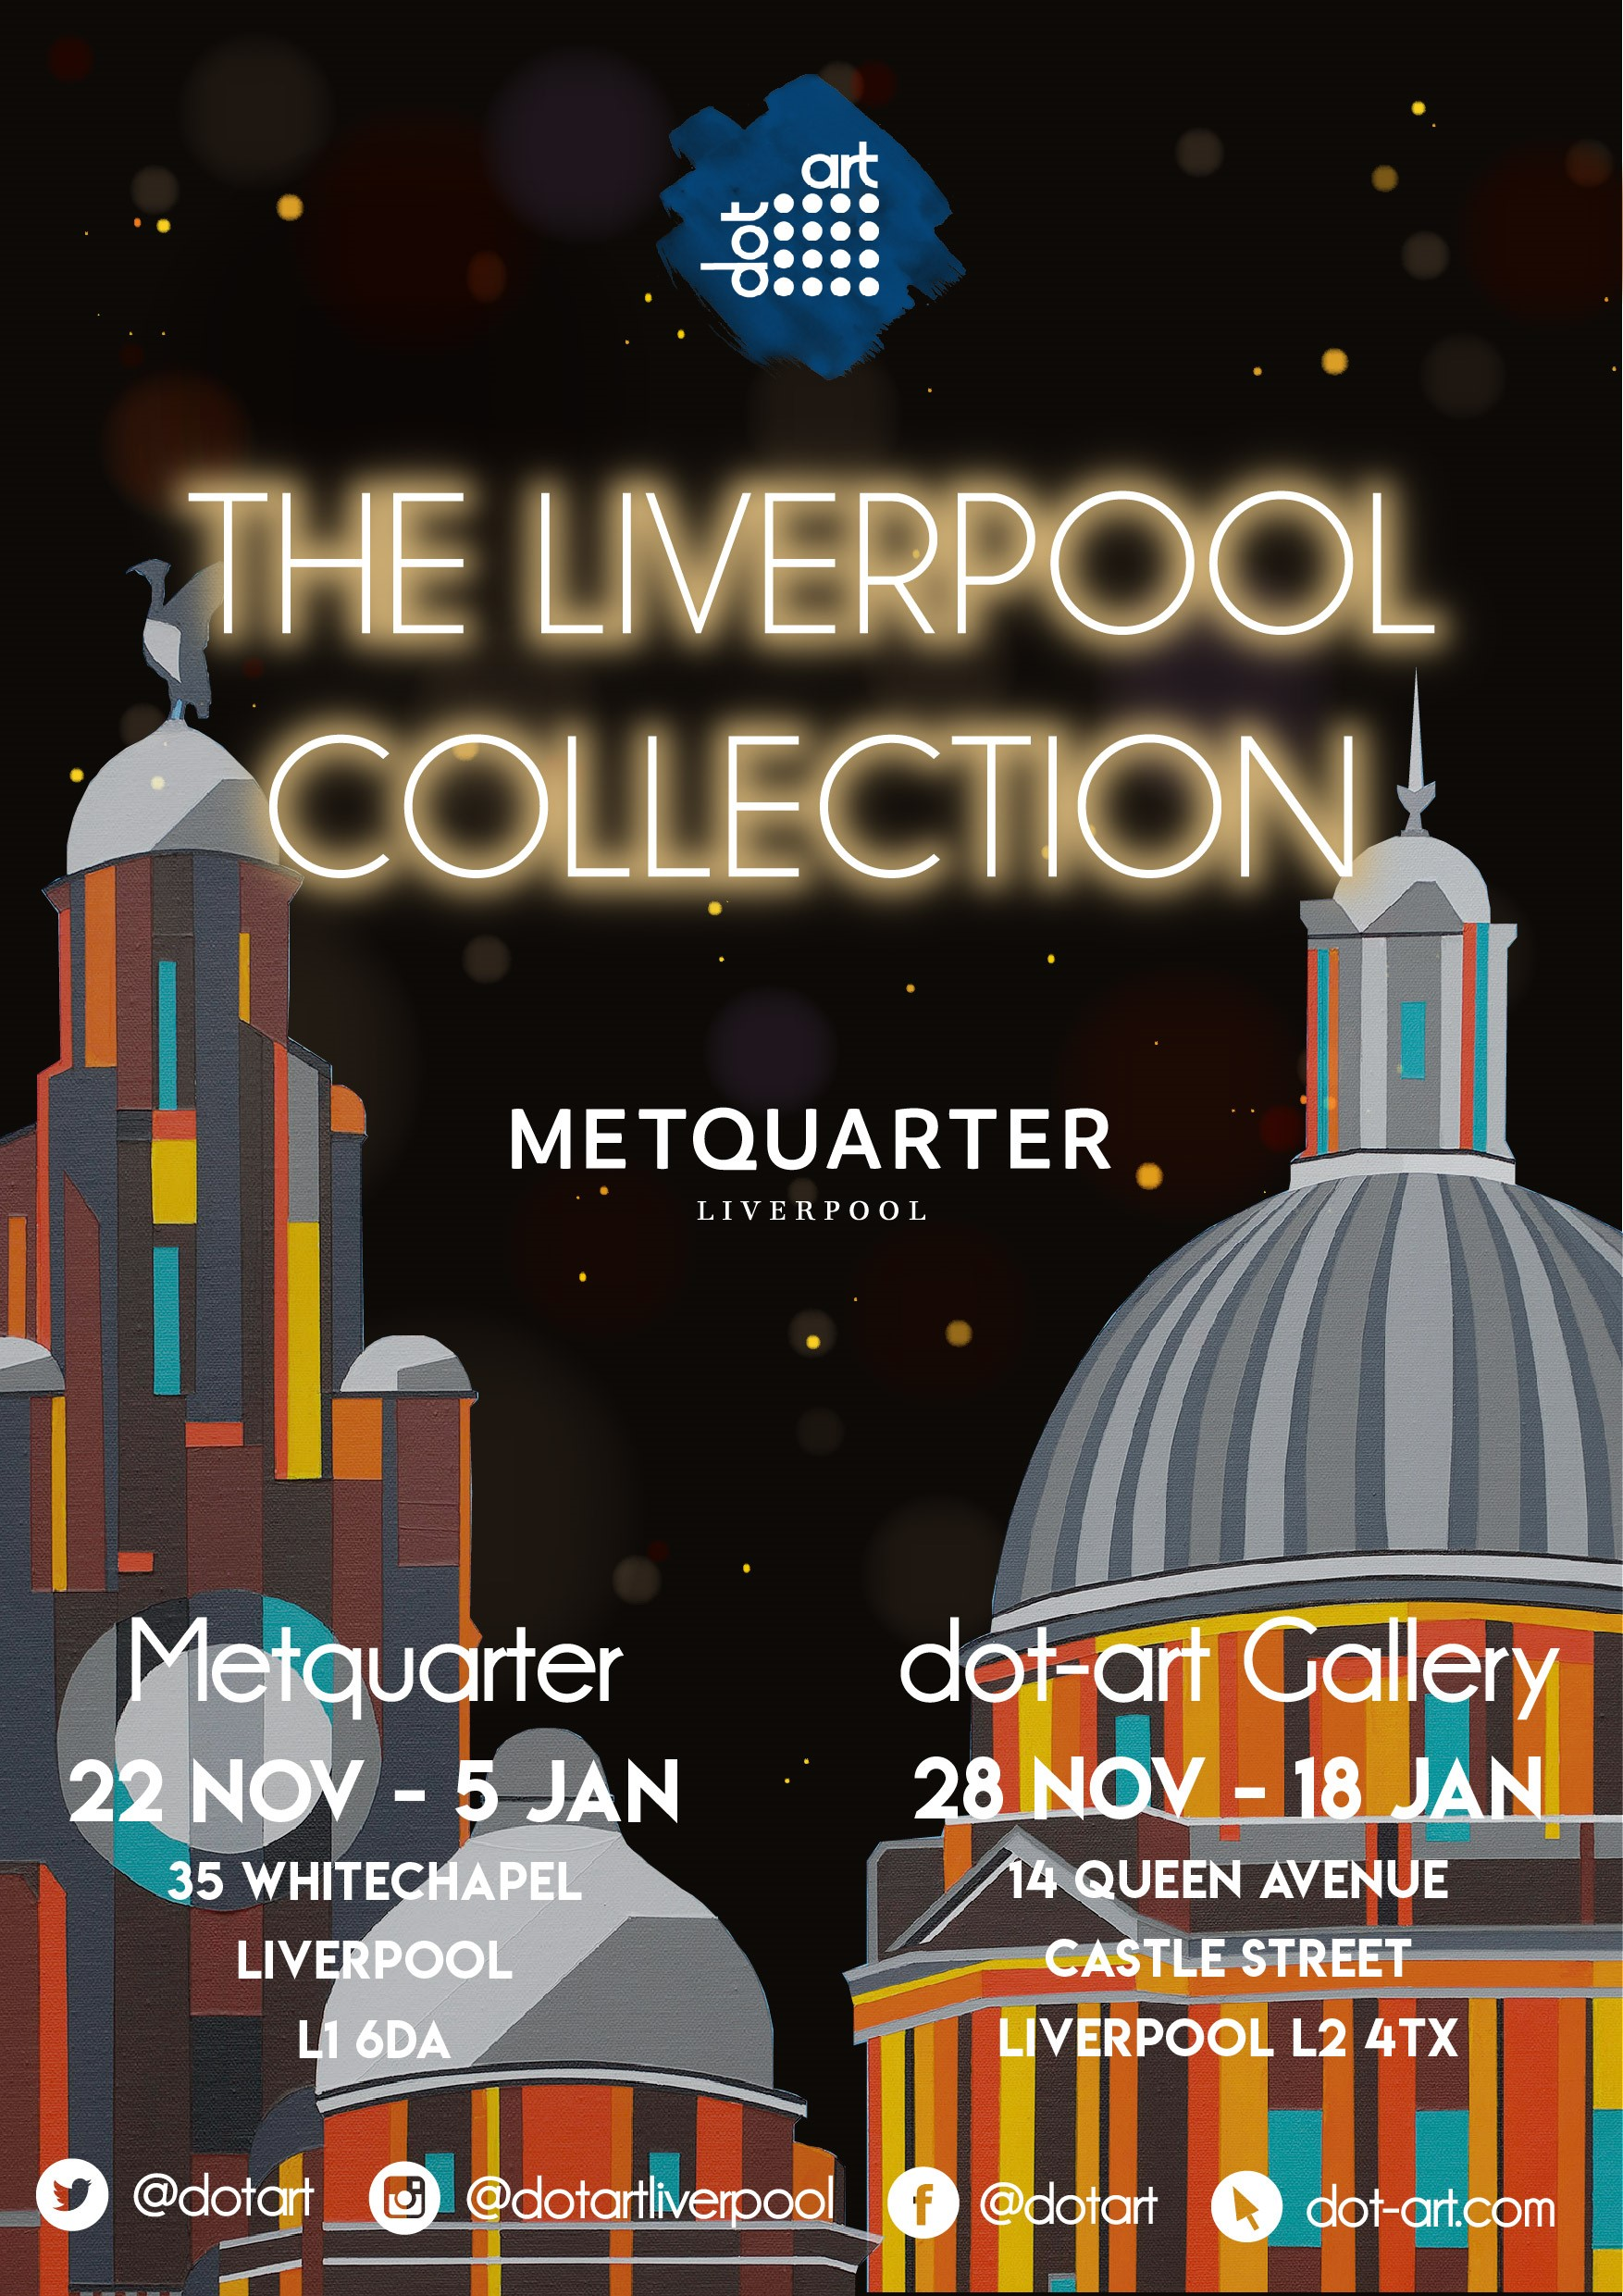 dot-art: The Liverpool Collection